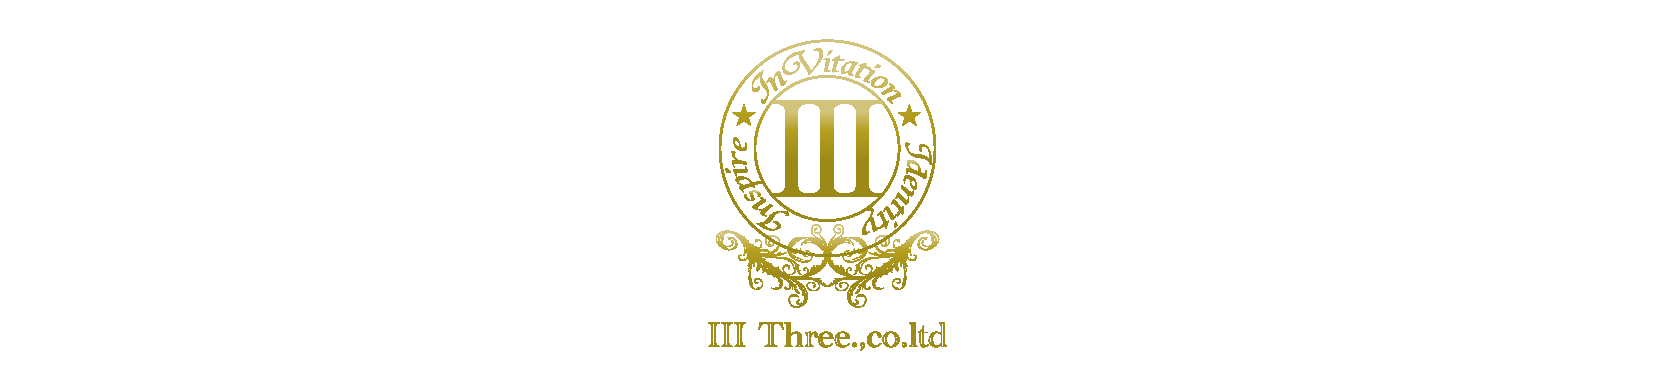 III Three.,co.ltd